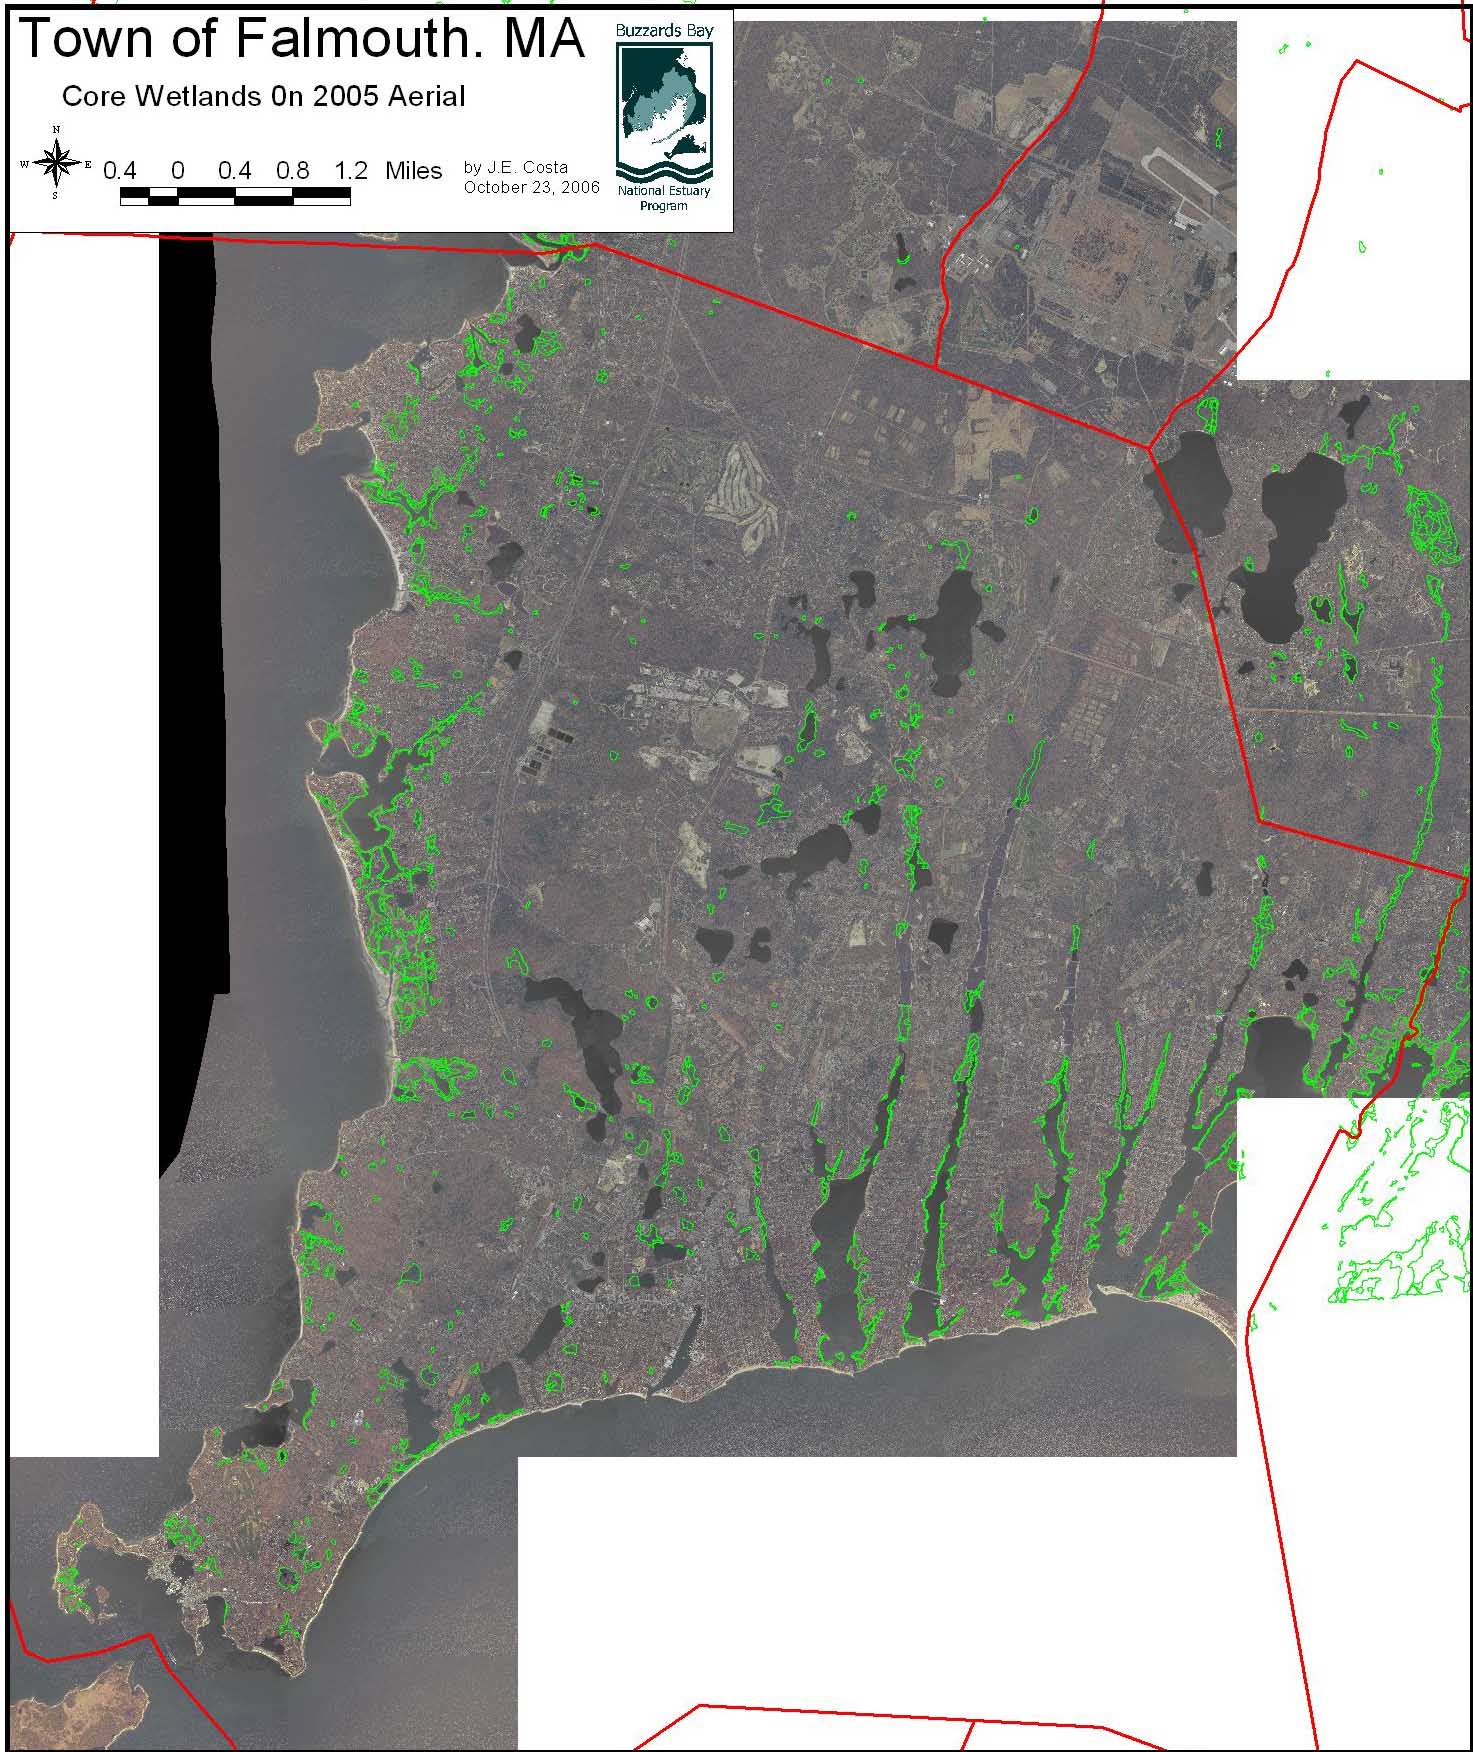 Falmouth buzzards bay national estuary program massgis land use map of falmouth 1985 vs 1999 open 170 kb size map geenschuldenfo Gallery